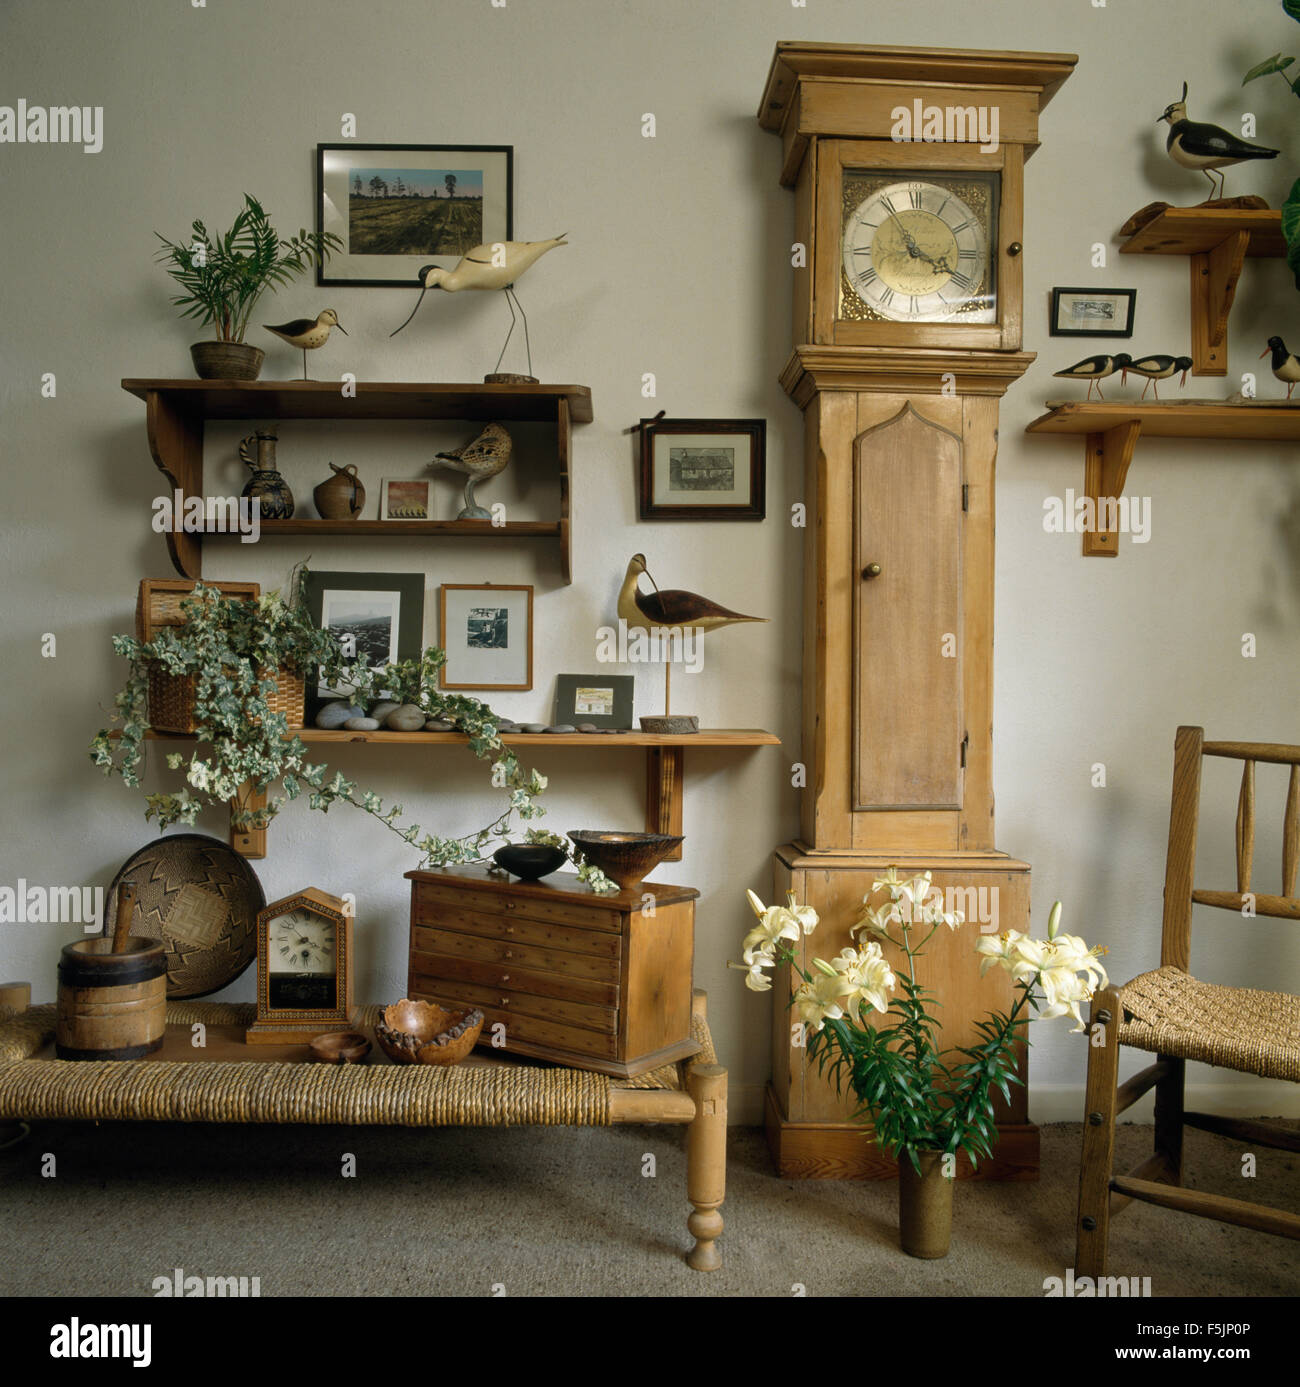 Pine long case clock and a low rattan stool in a nineties dining room with collection of wooden birds on small shelves - Stock Image